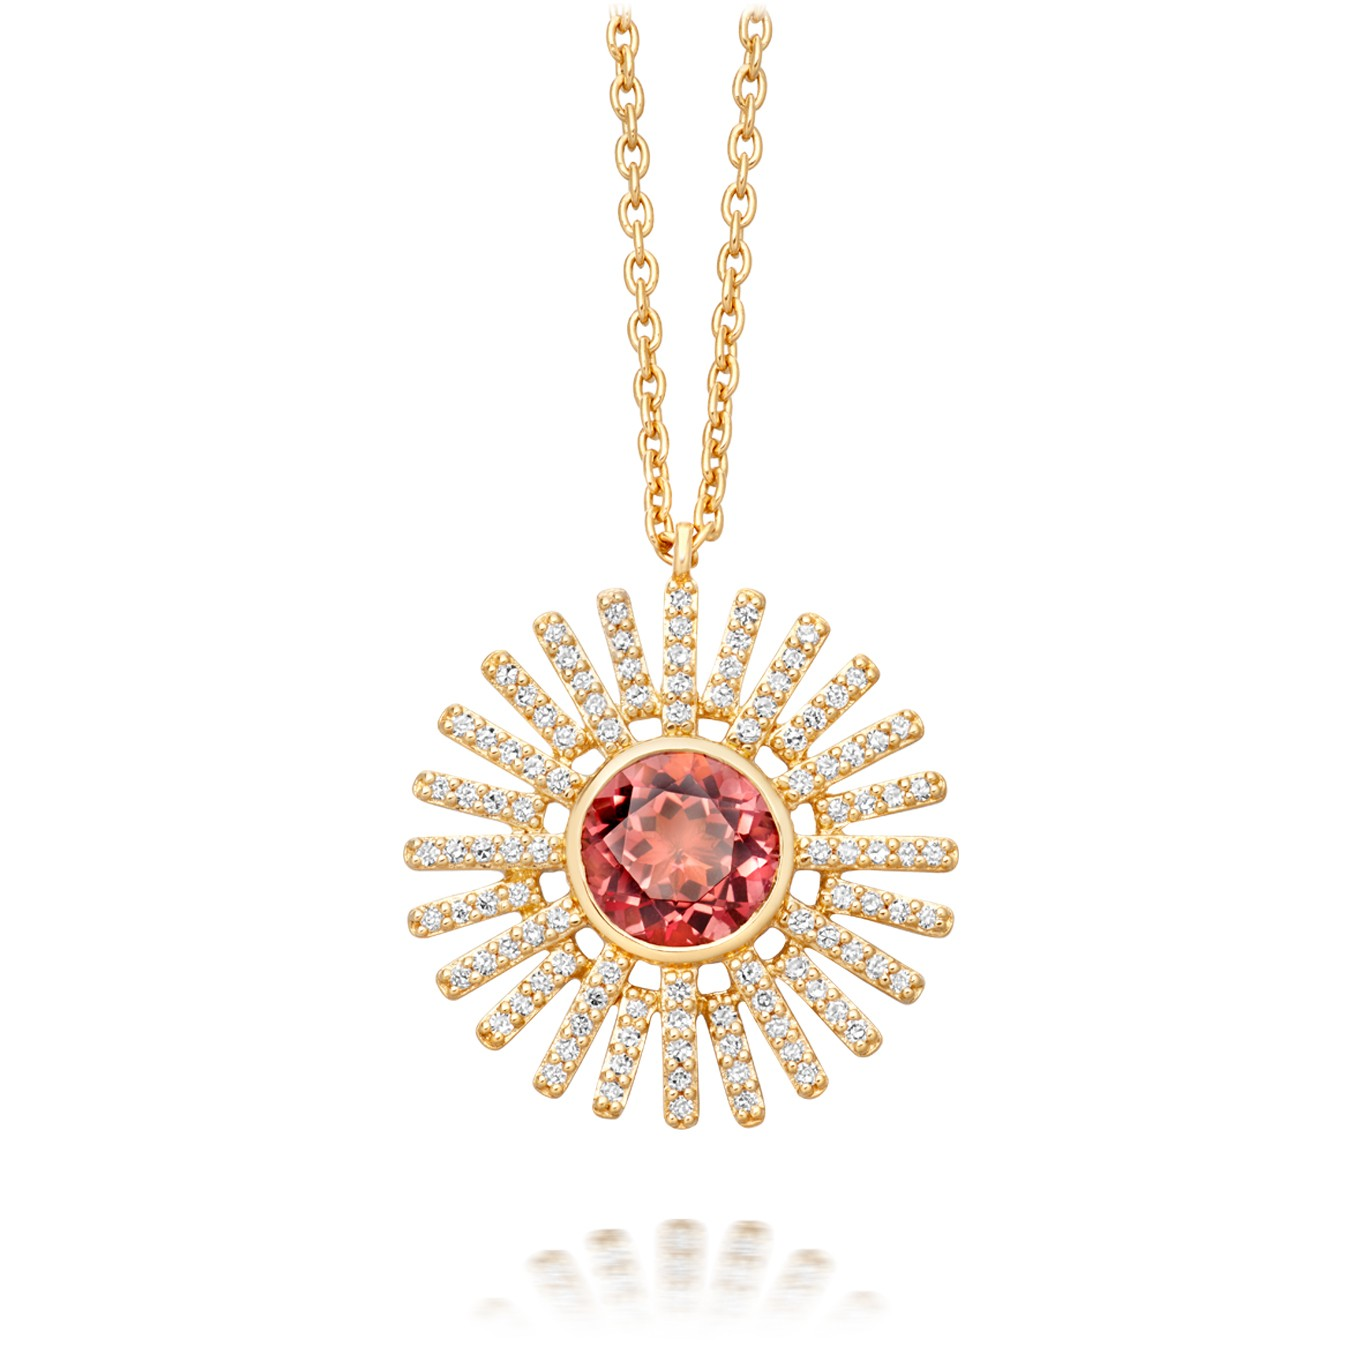 Astley Clarke Pink Tourmaline Rising Sun Pendant - British luxury jewellery - UK style blog